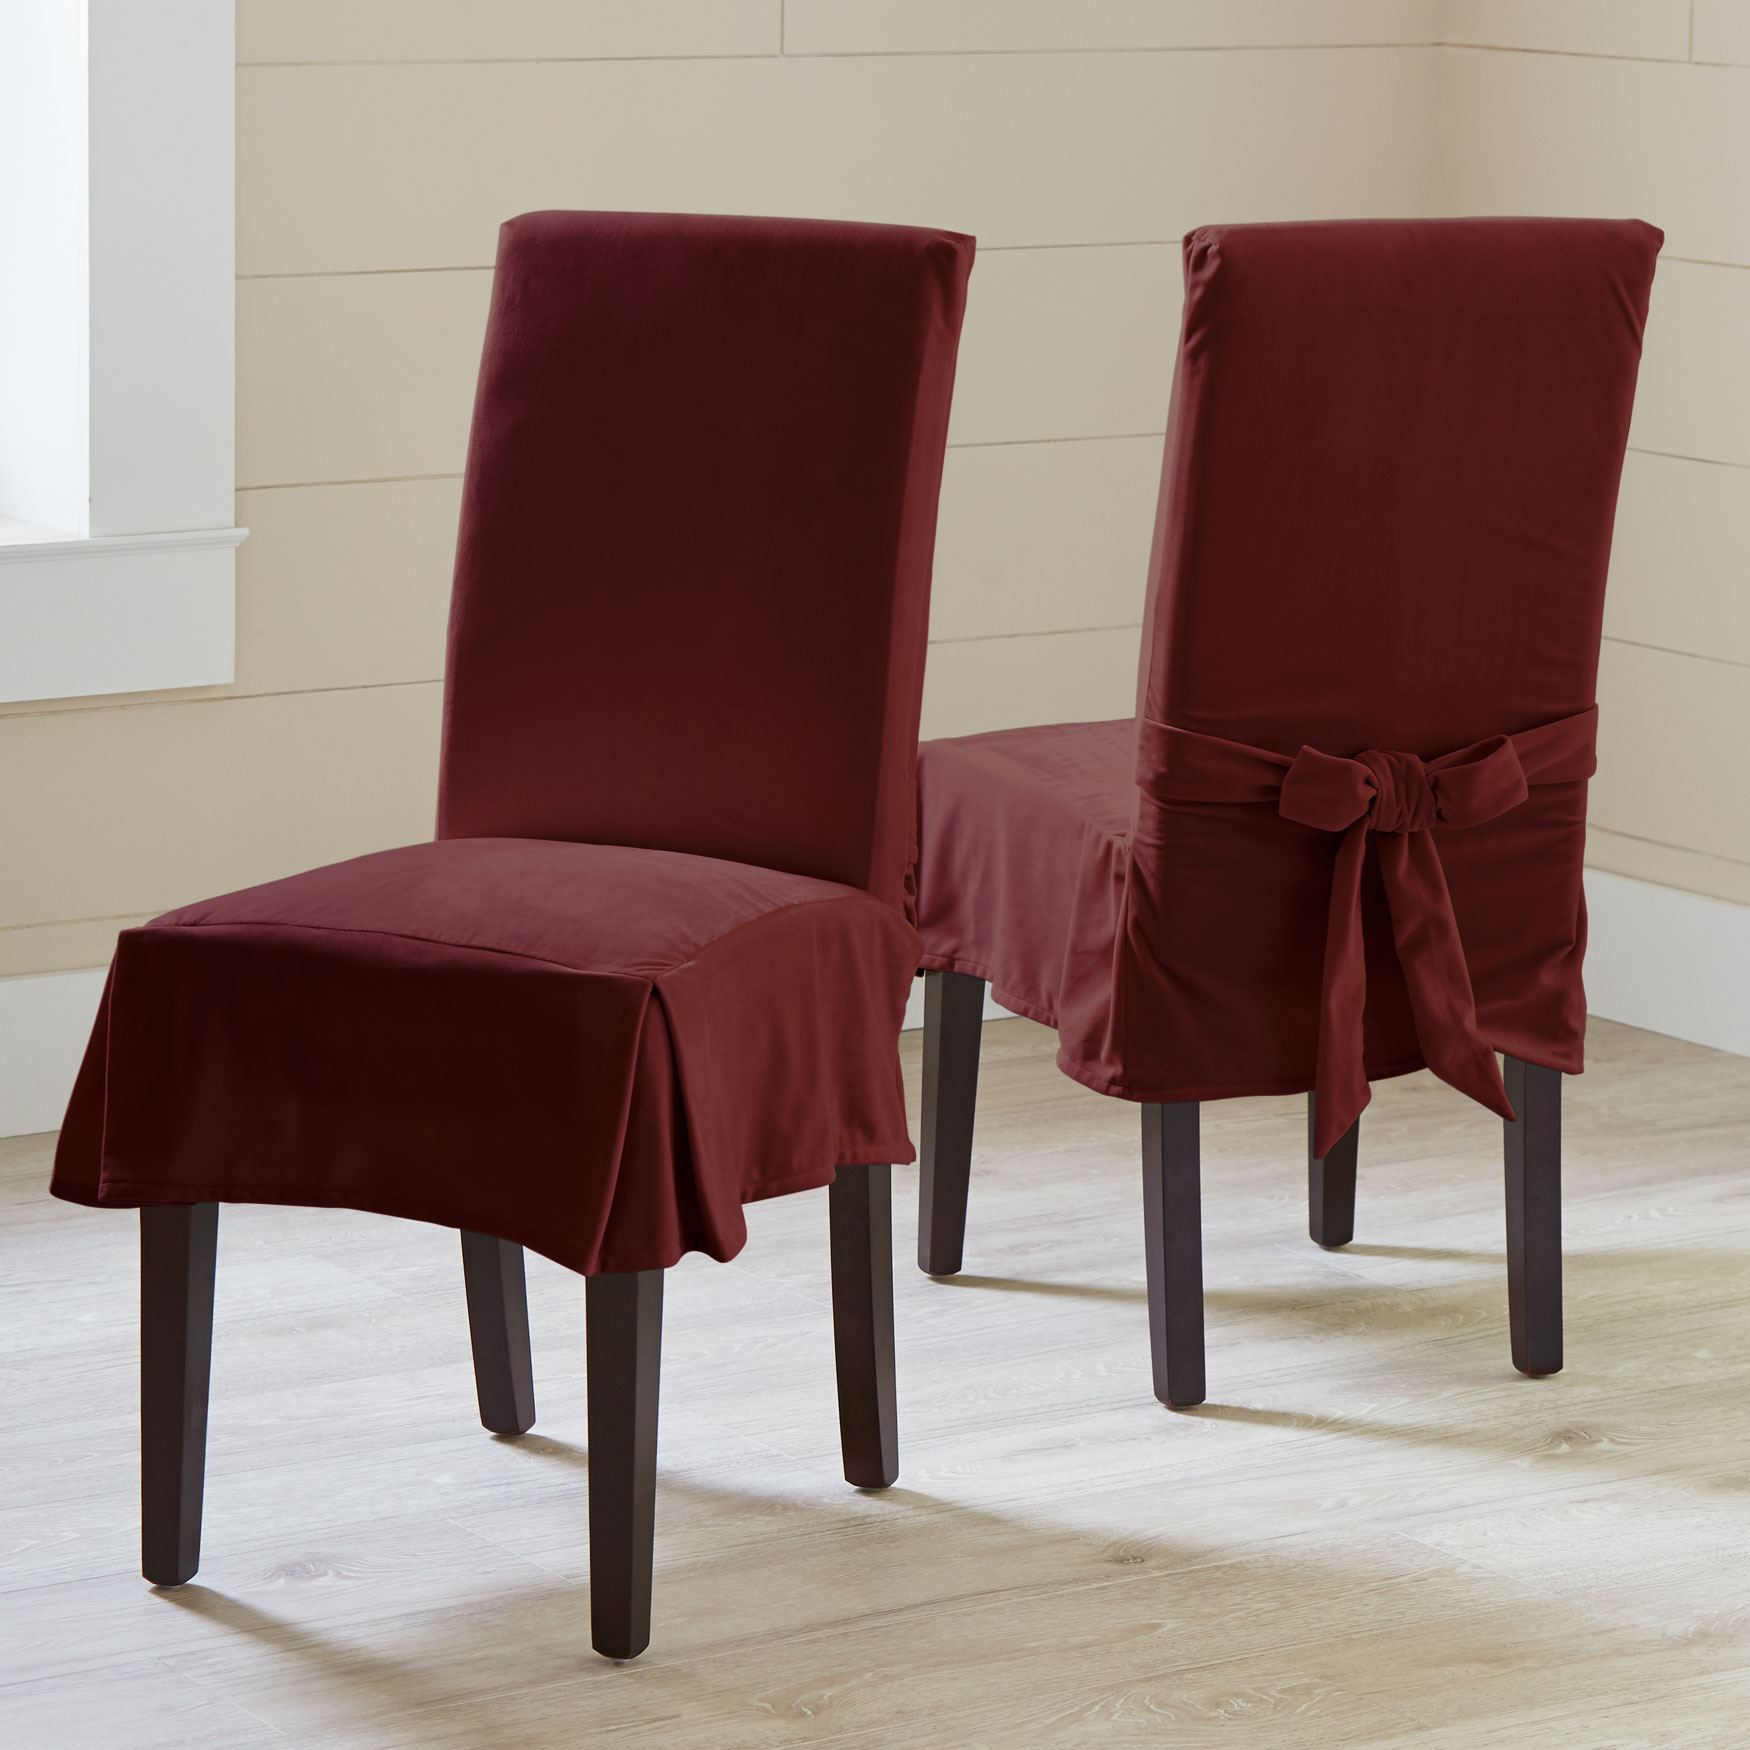 Merveilleux Venice Velvet Chair Covers, Set Of 2,